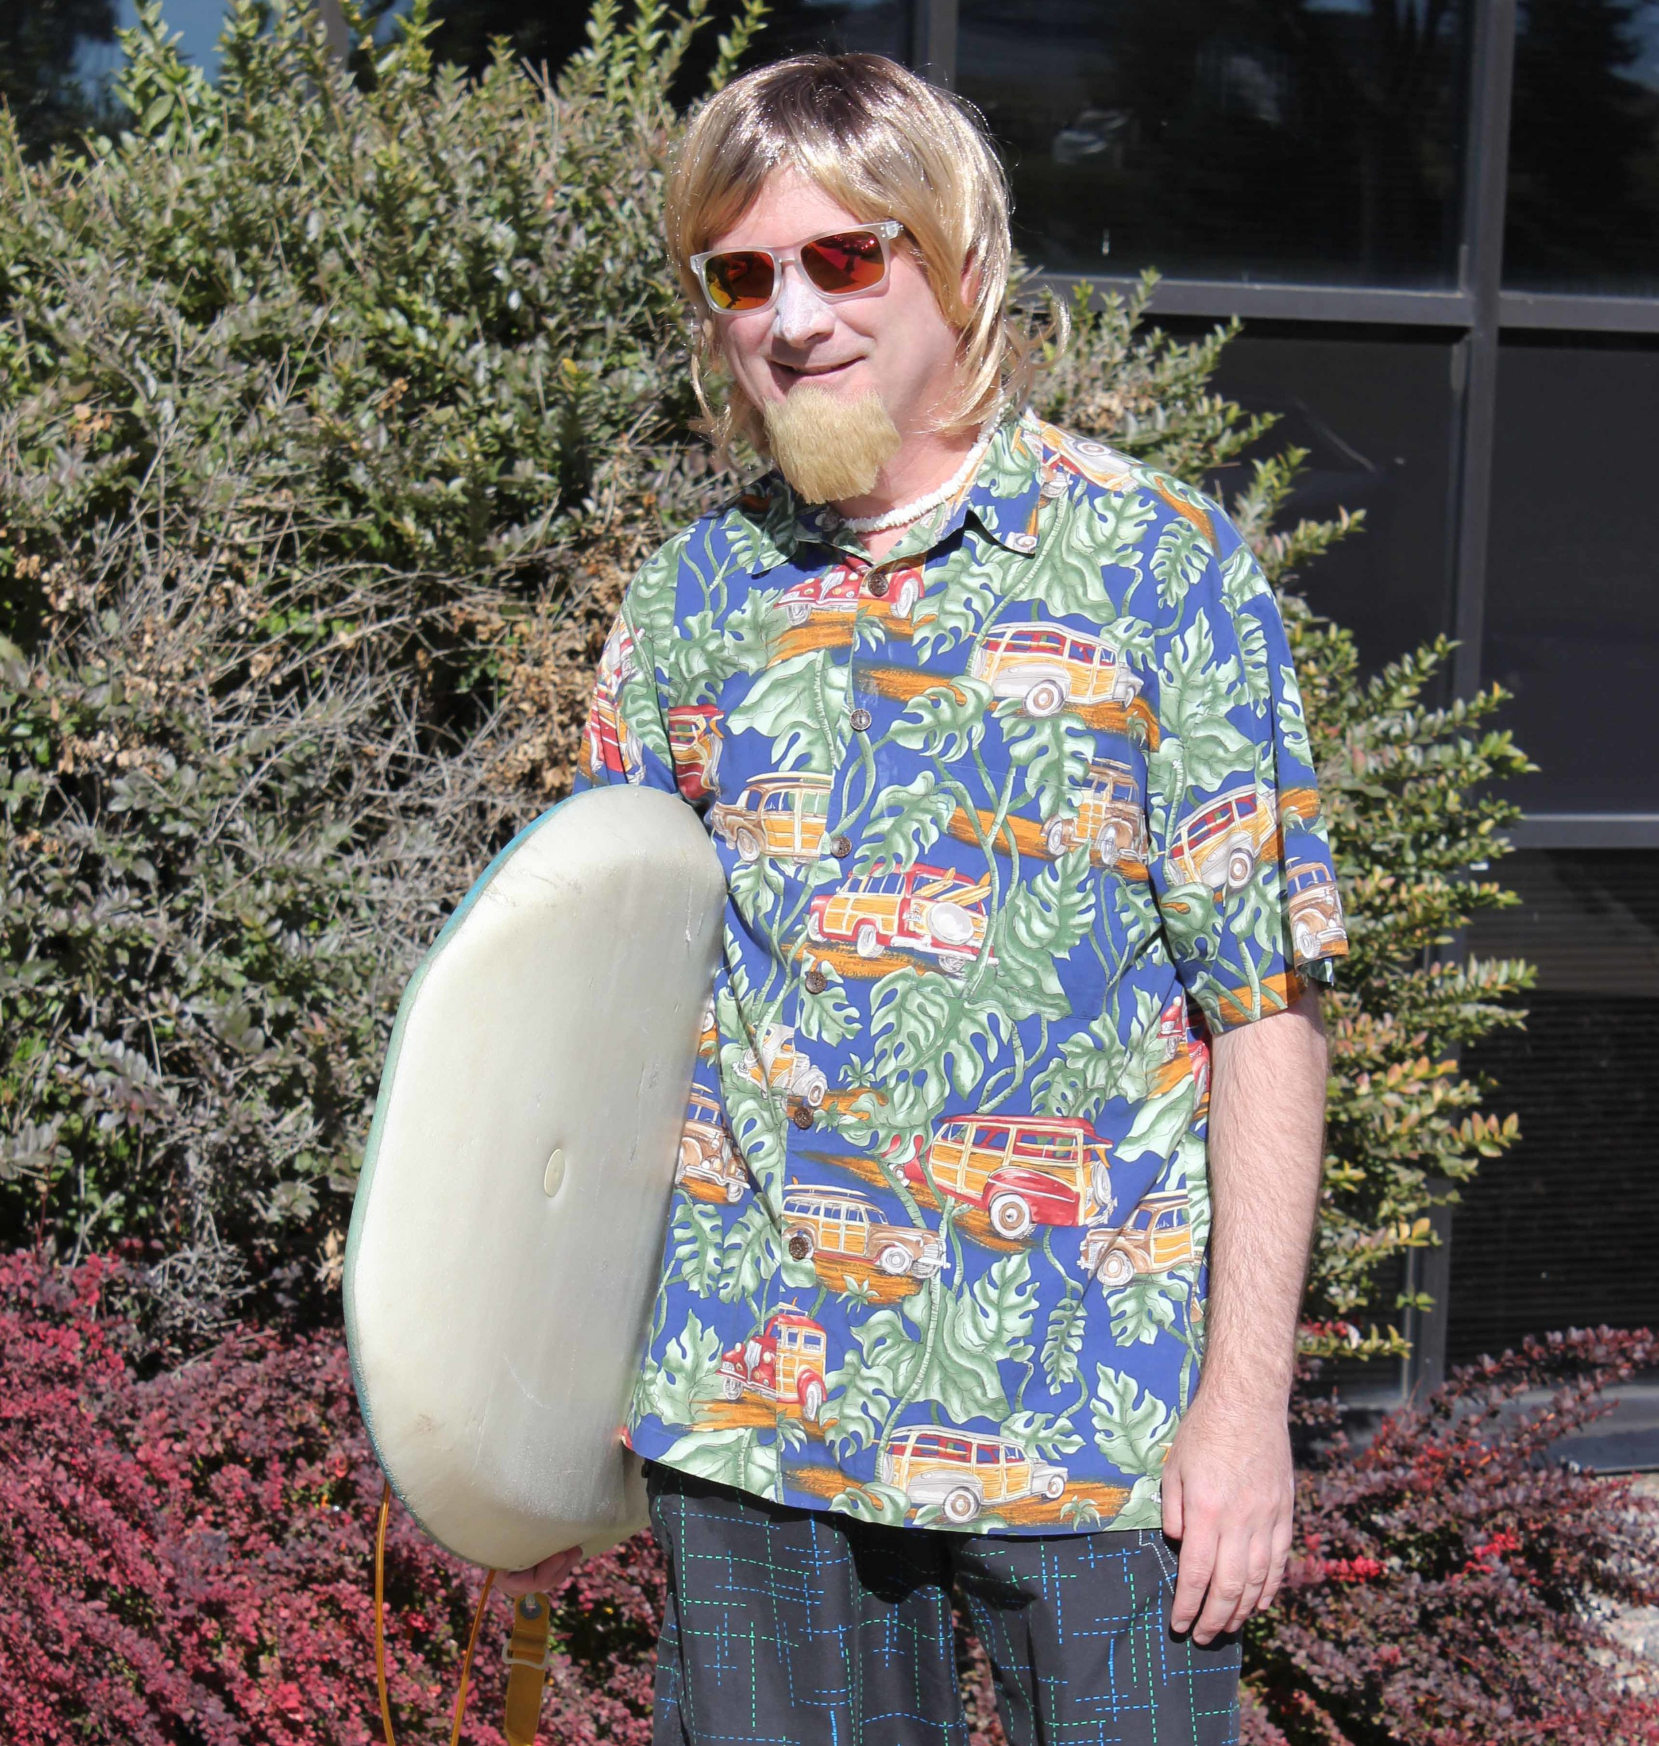 Mark Seybold as 'Surfer Dude' at the ExtenData 2014 Halloween party.